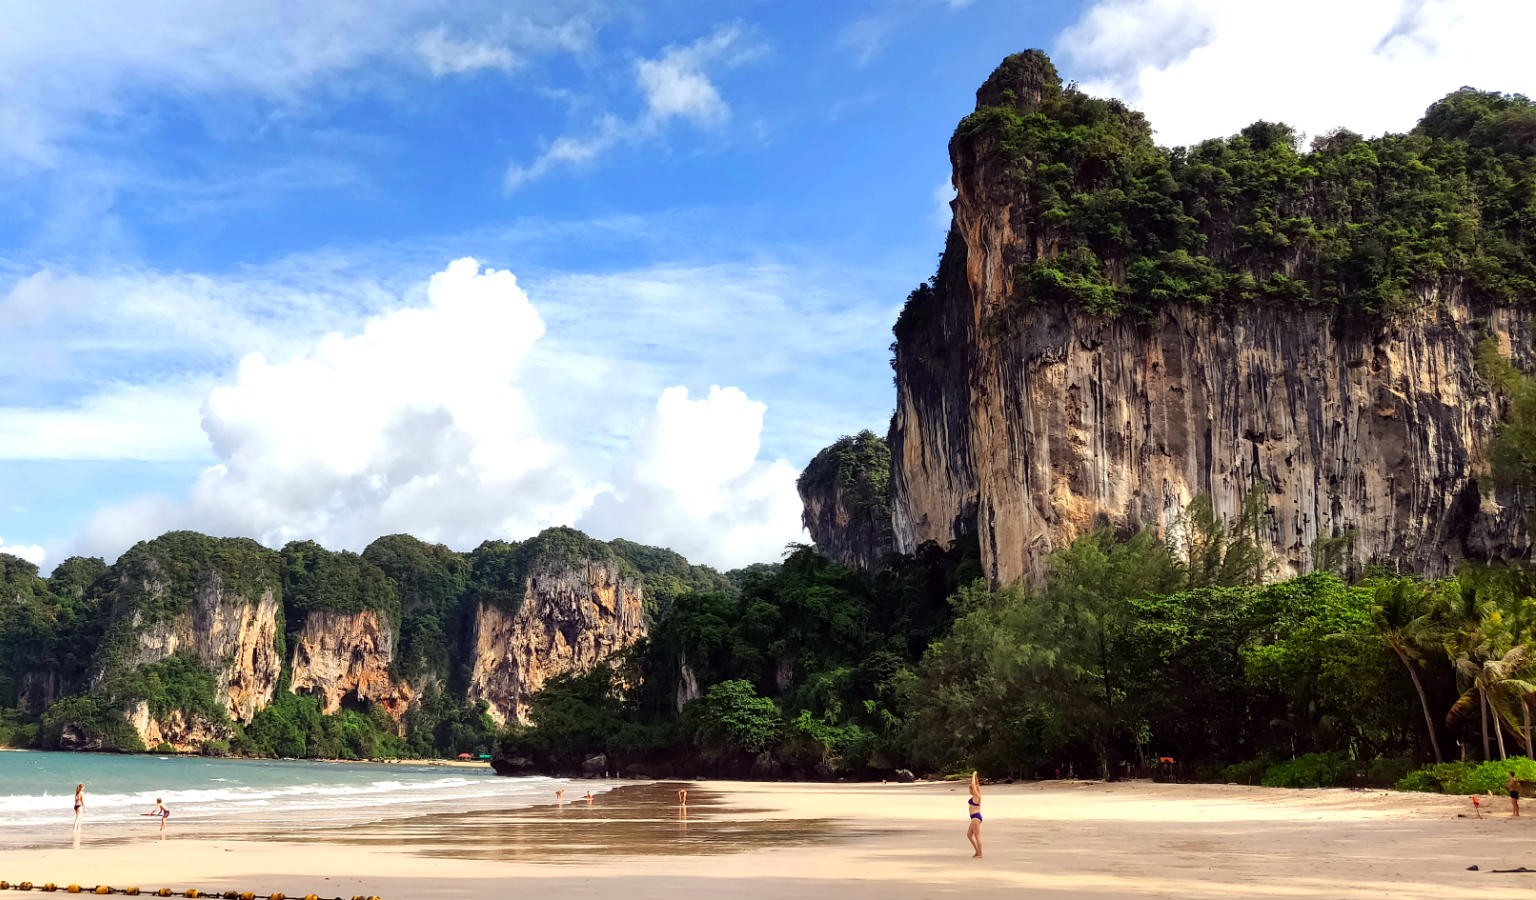 Railay West beach omzoomd met rotsen